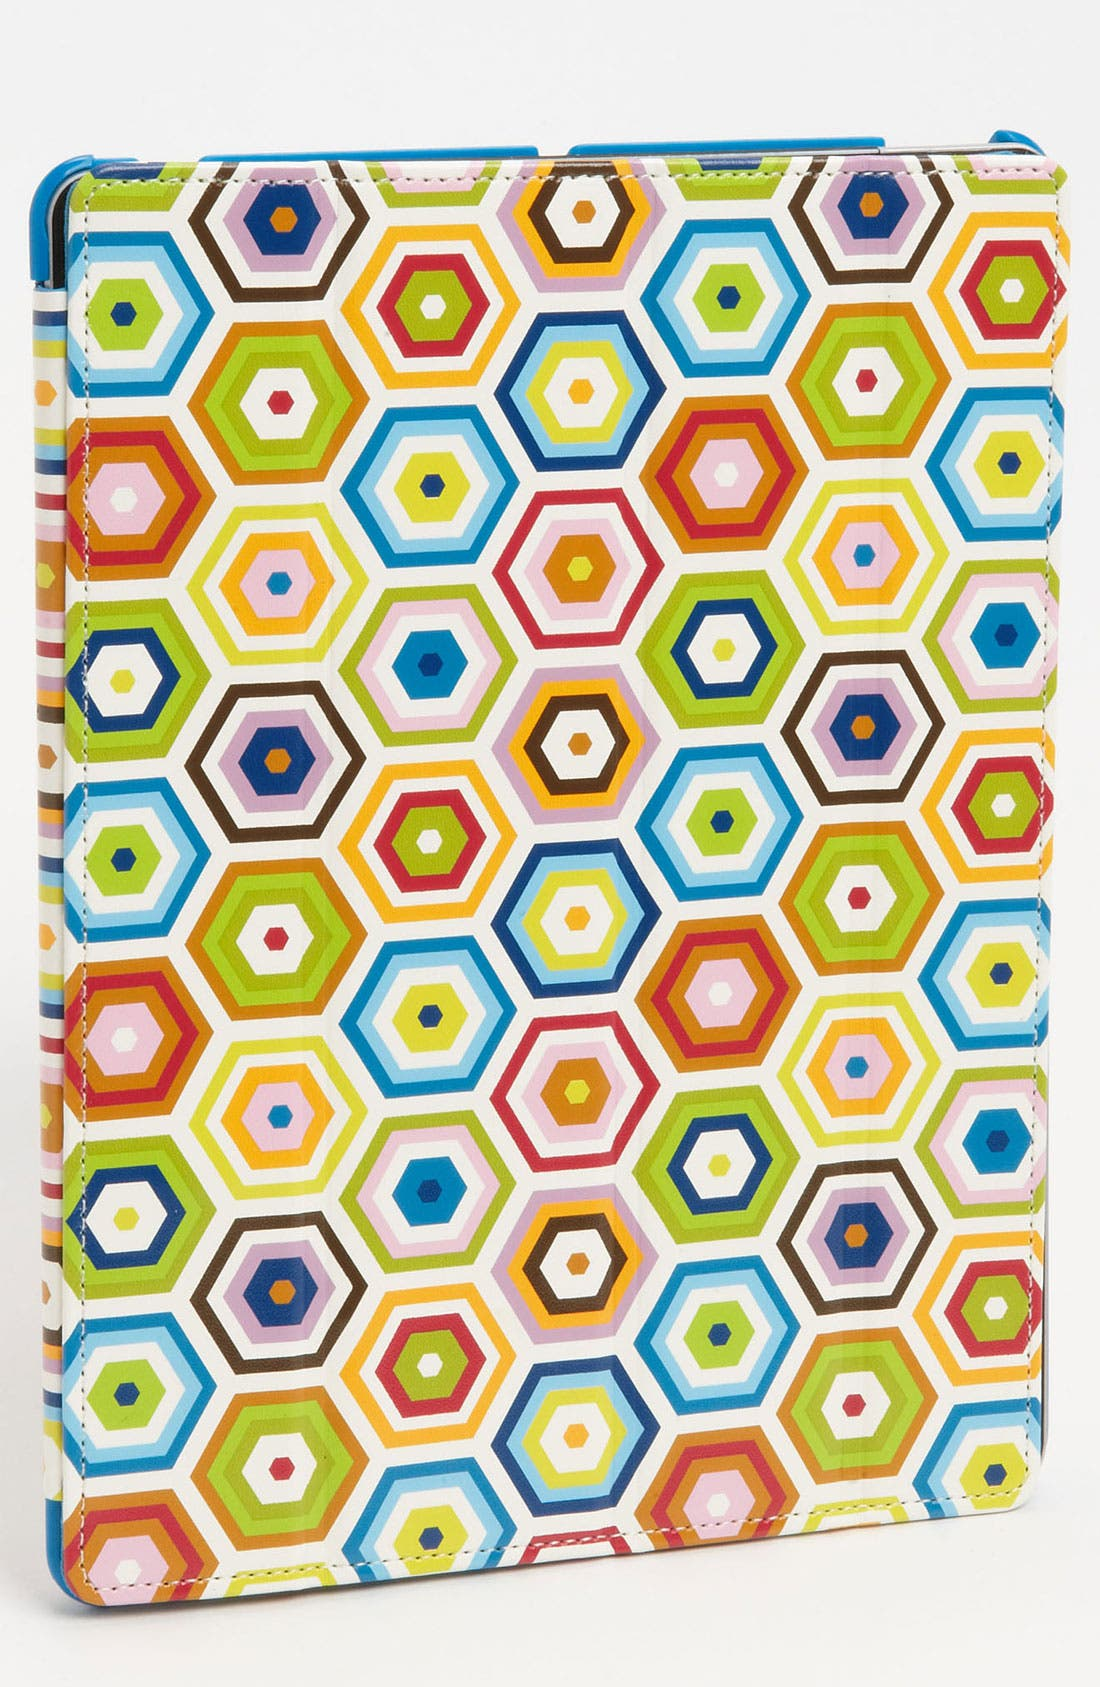 Alternate Image 1 Selected - Jonathan Adler 'Honeycomb' iPad 2 Case